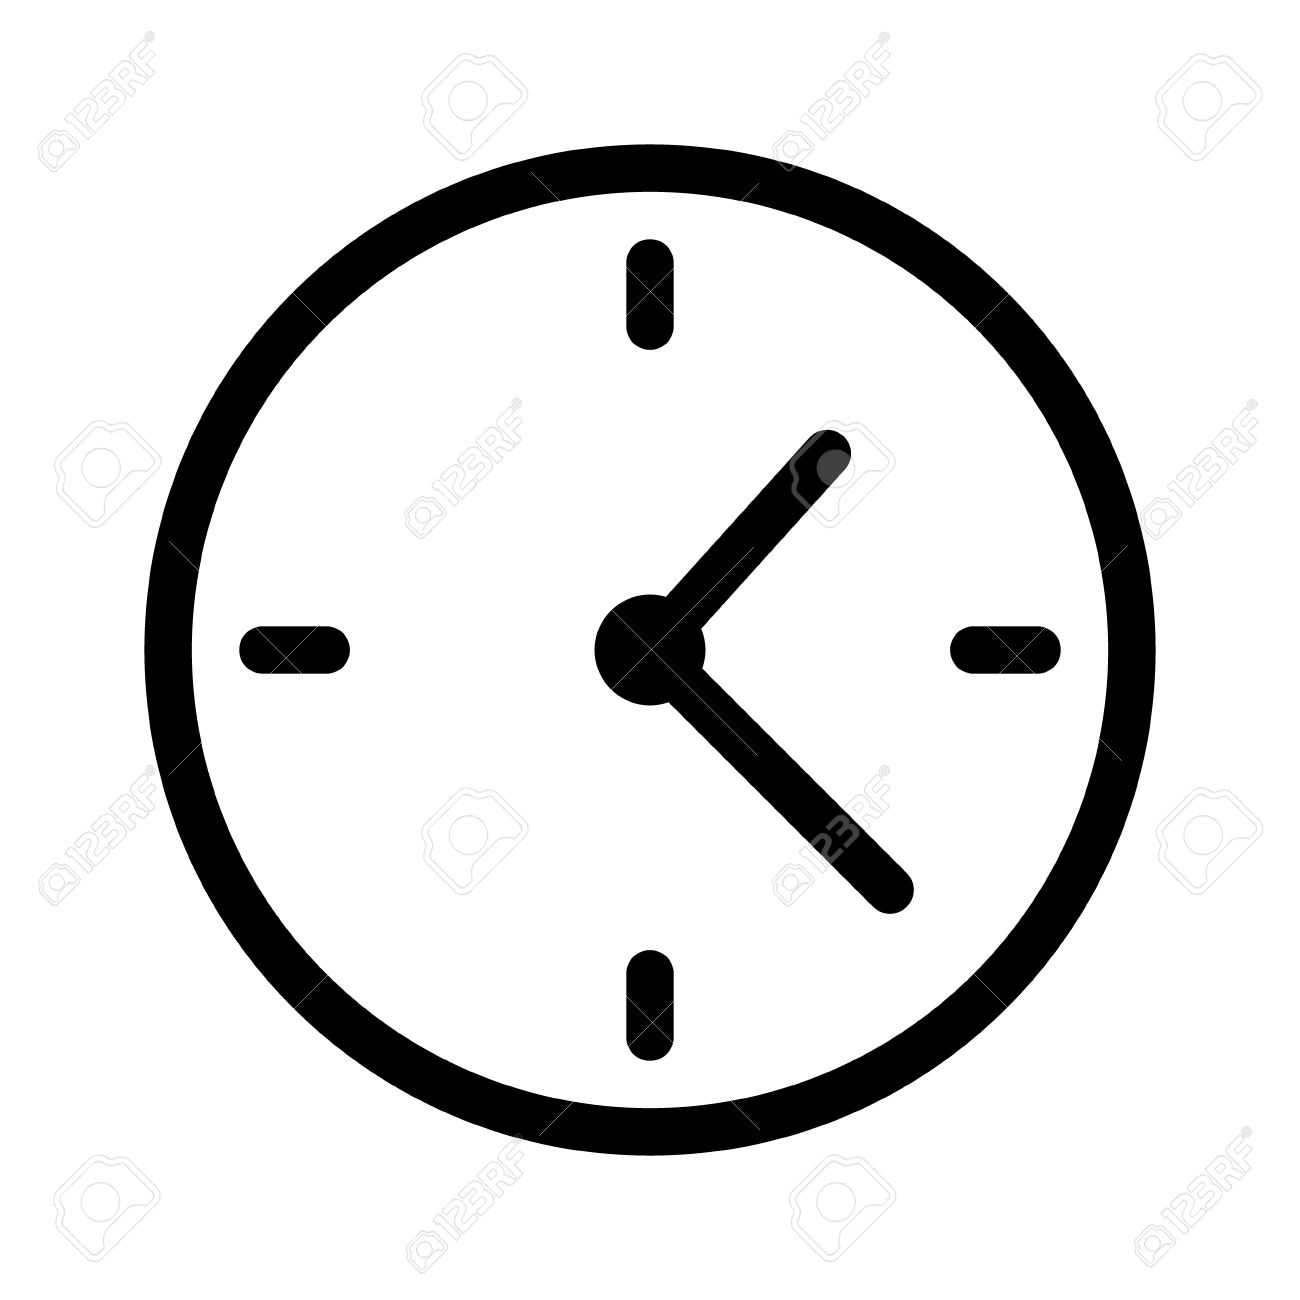 Simple Clock Face, Clockface Or Watch Face With Hands Line Art.